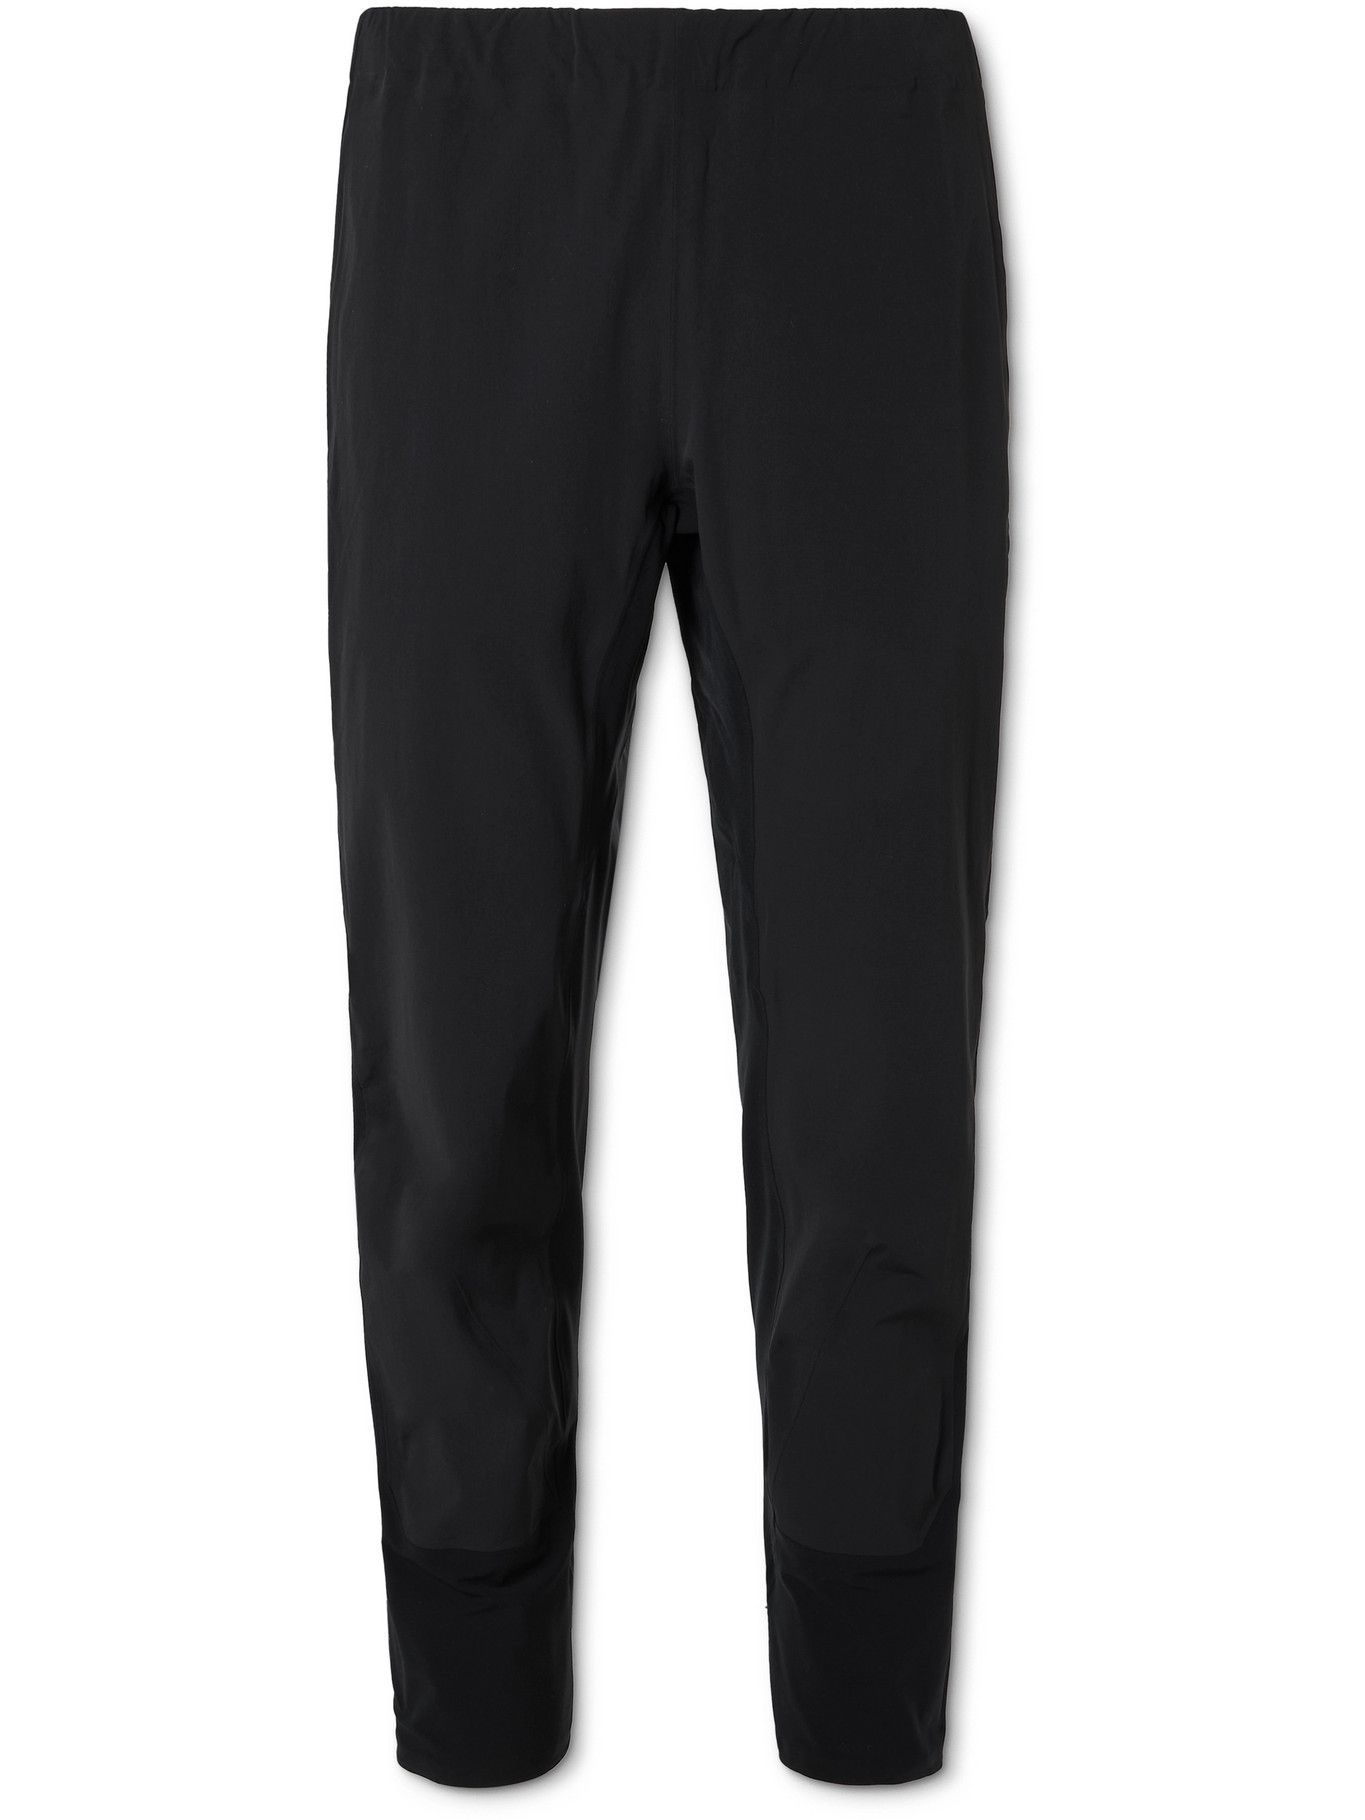 VEILANCE - Secant Slim-Fit Tapered Shell Trousers - Black